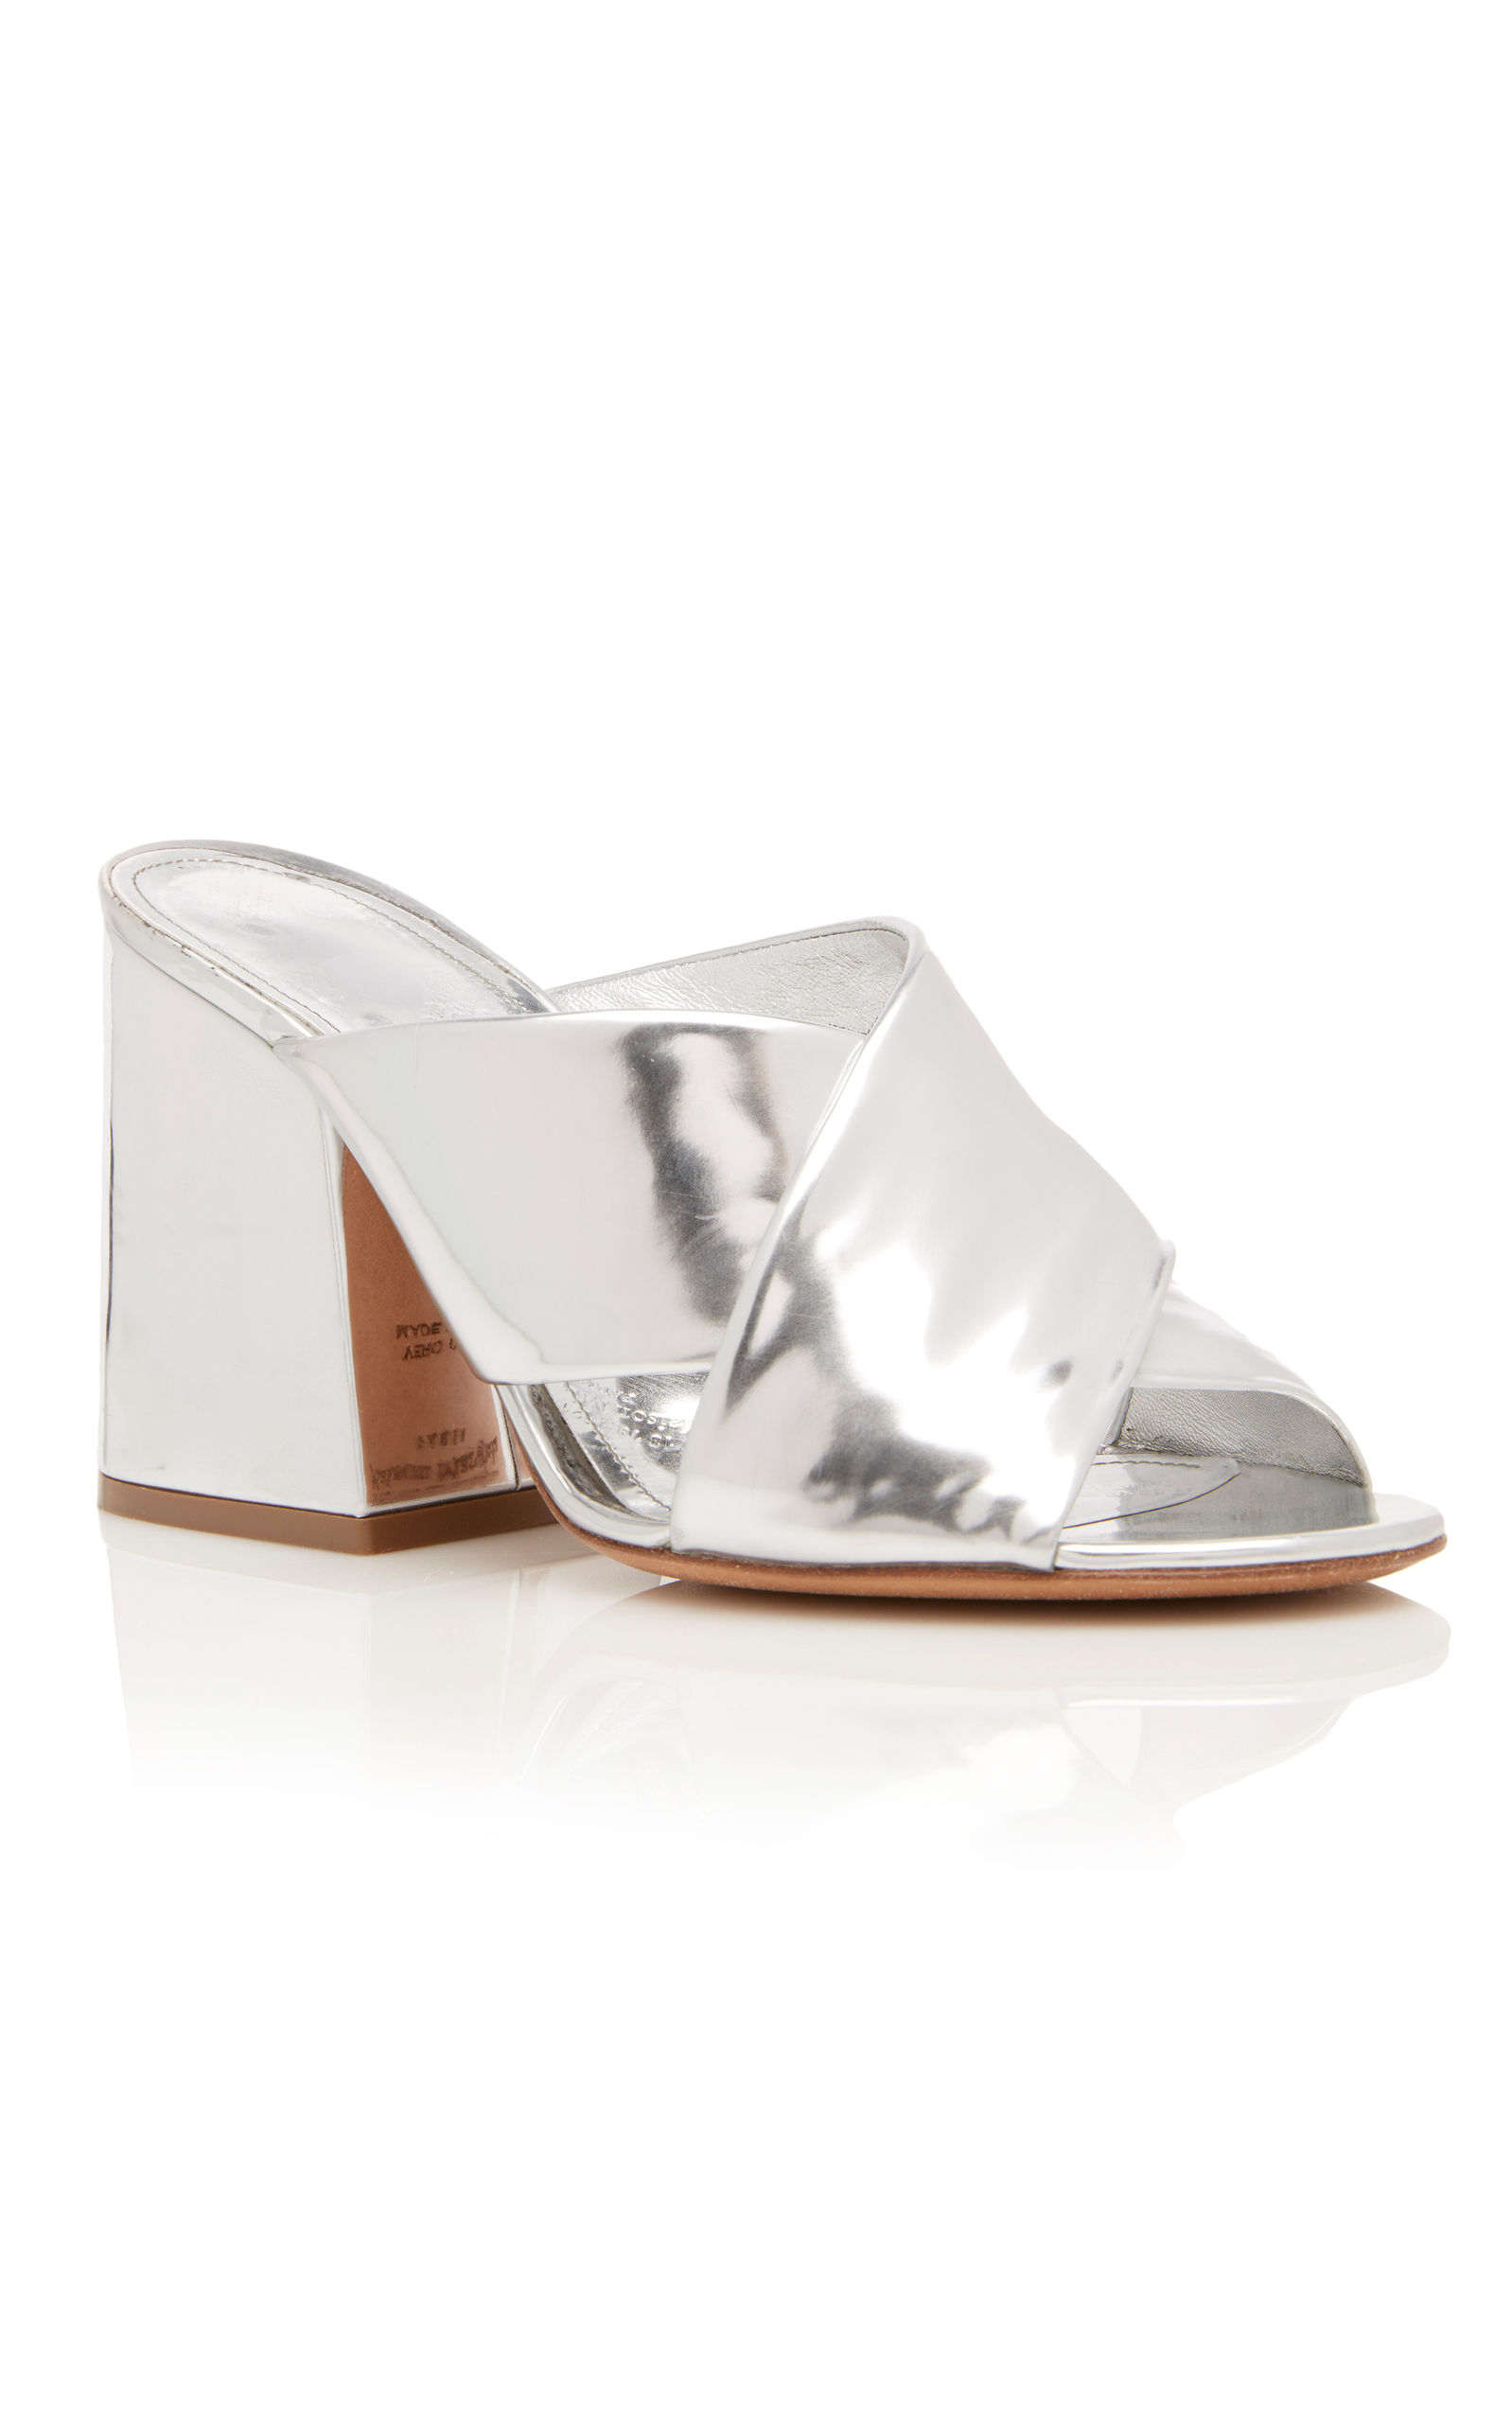 Maison Margiela Mules in Metallics.